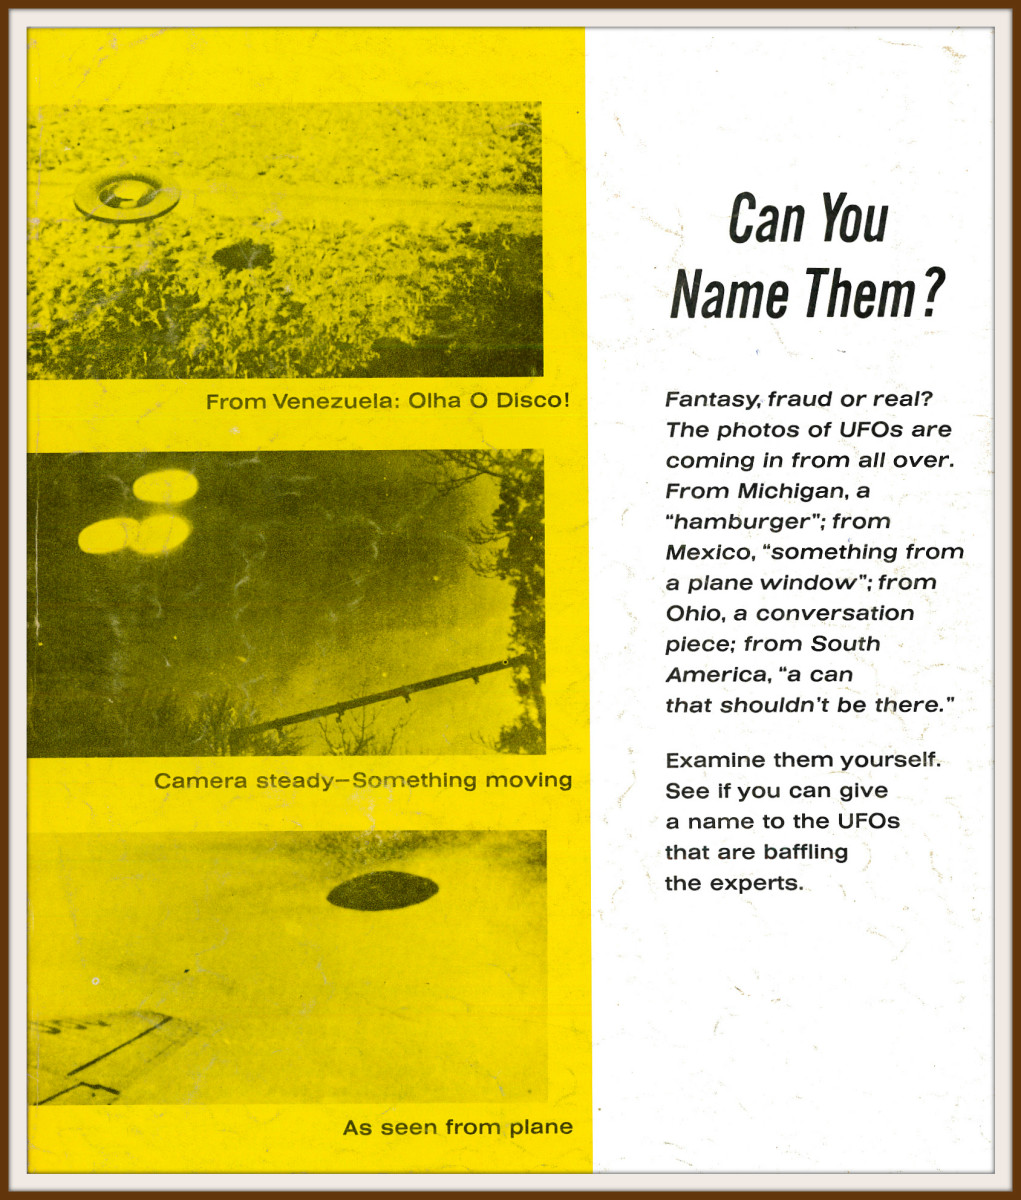 """Can you name them? Fantasy, fraud or real? The photos of UFOs are coming in from all over. From Michigan a """"hamburger""""; from Mexico, """"sometime for a plane window""""; From Ohio, a conversation piece."""